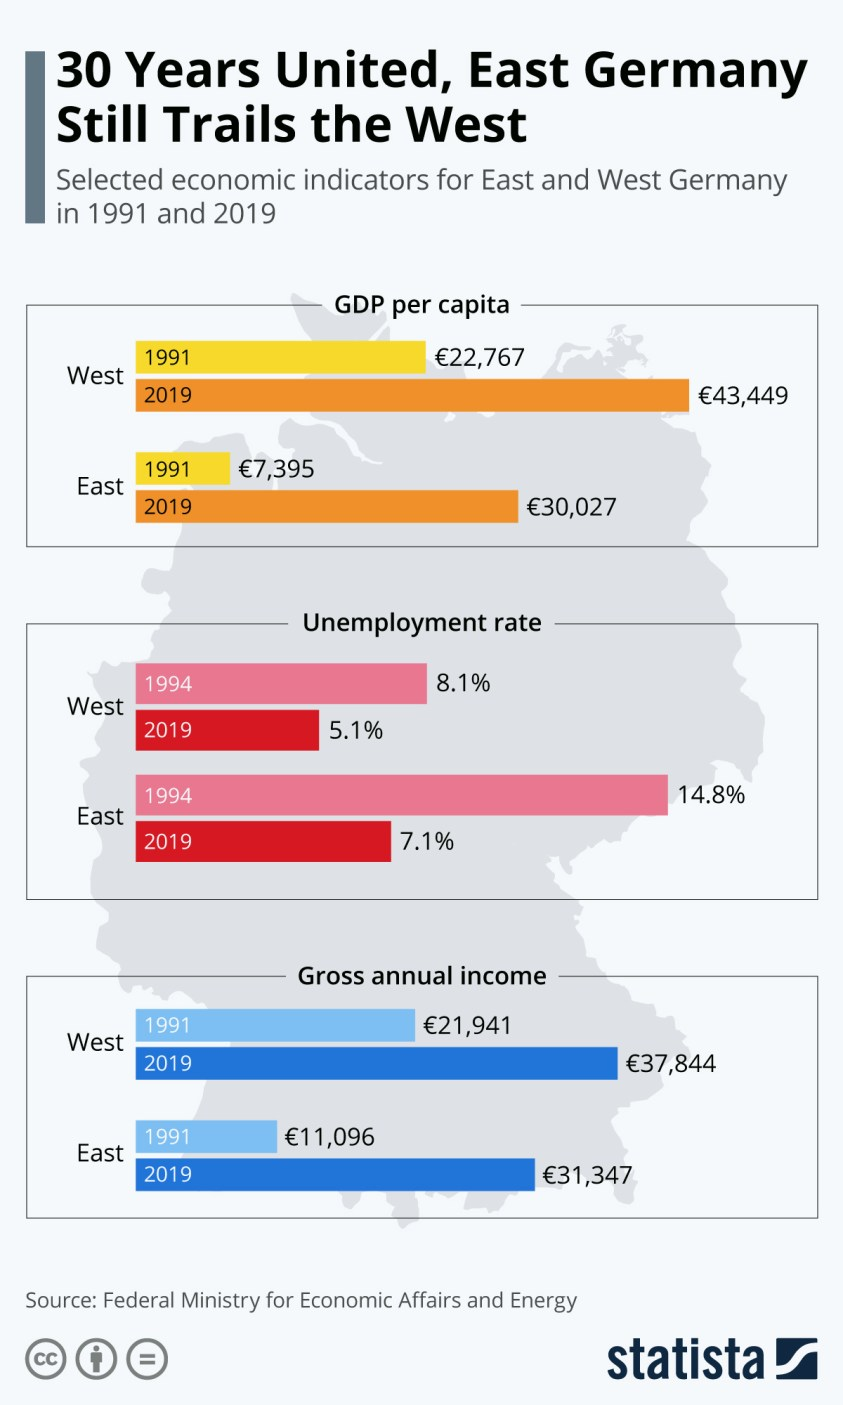 Economic Differences Between Eastern and Western Germany